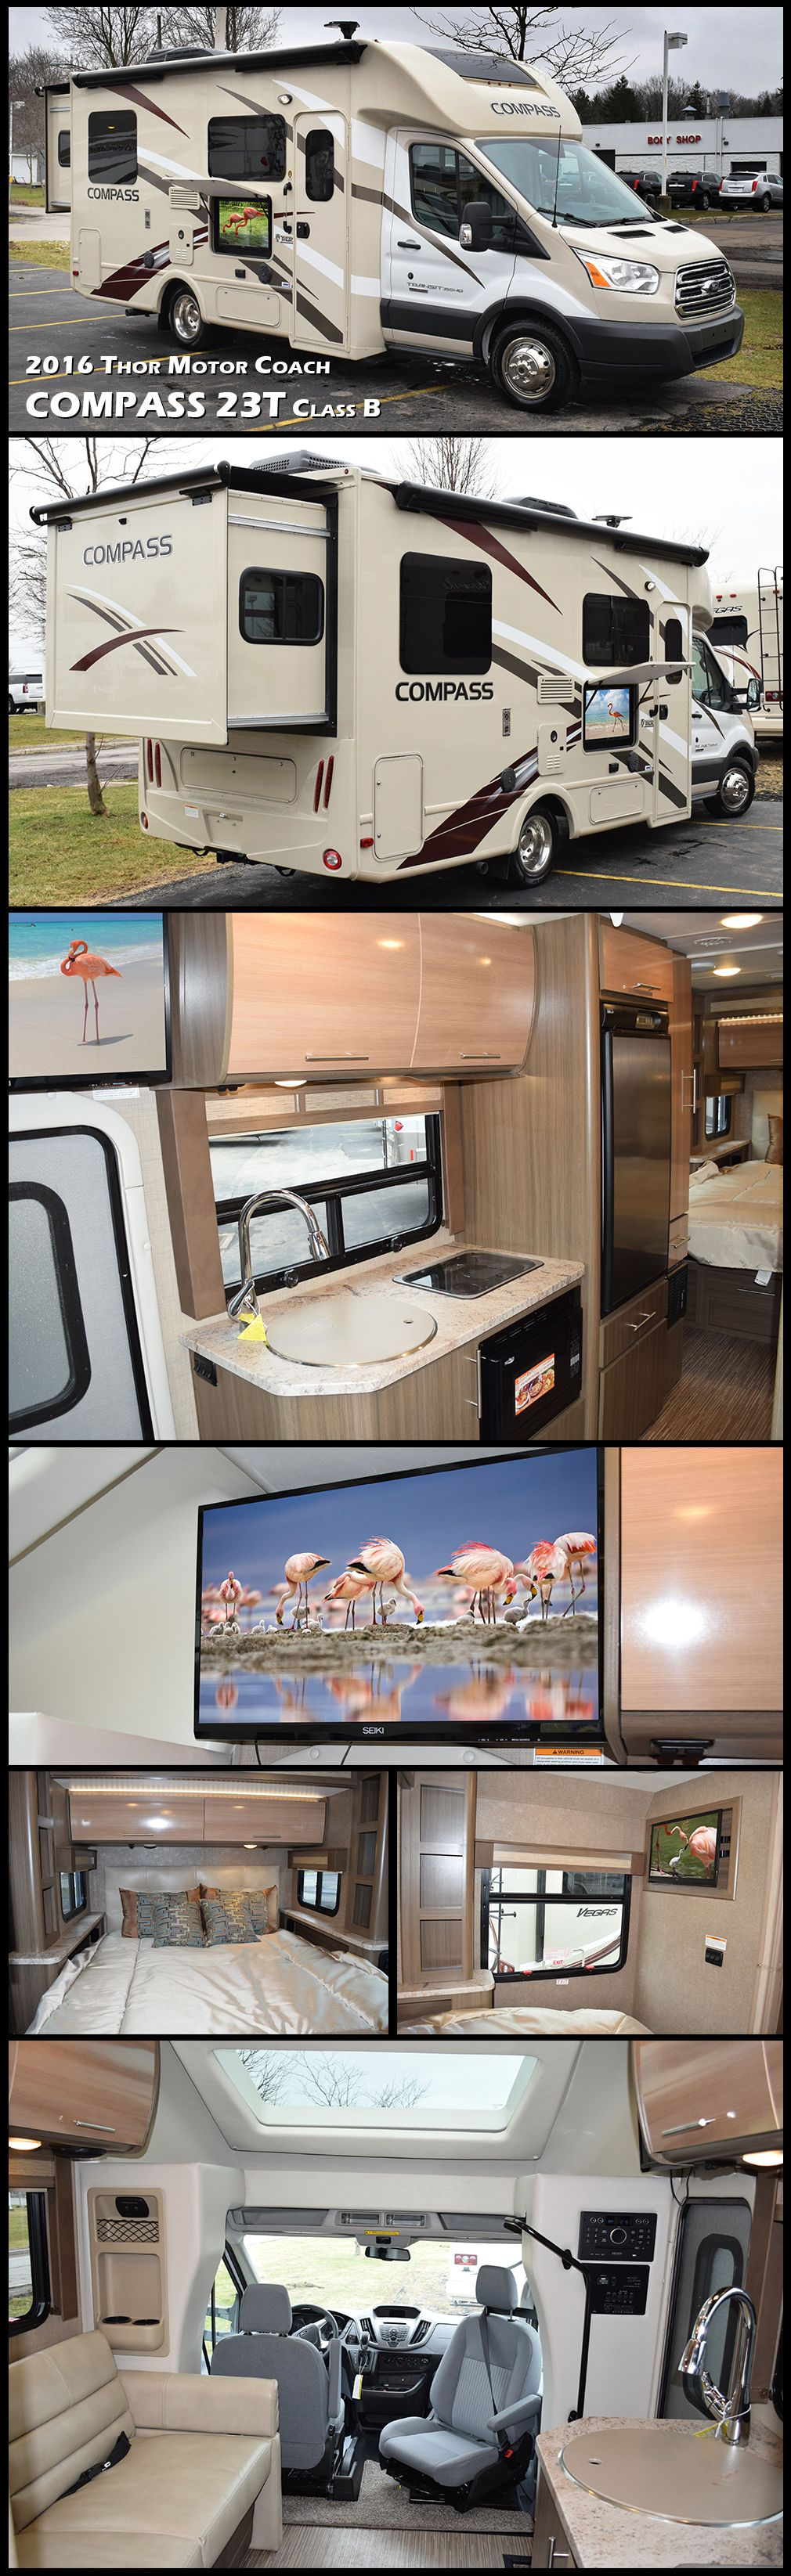 Luxury motorhome class a diesel bus size class a rvs are generally the largest of the three types of motor homes there is a wide variety of wi